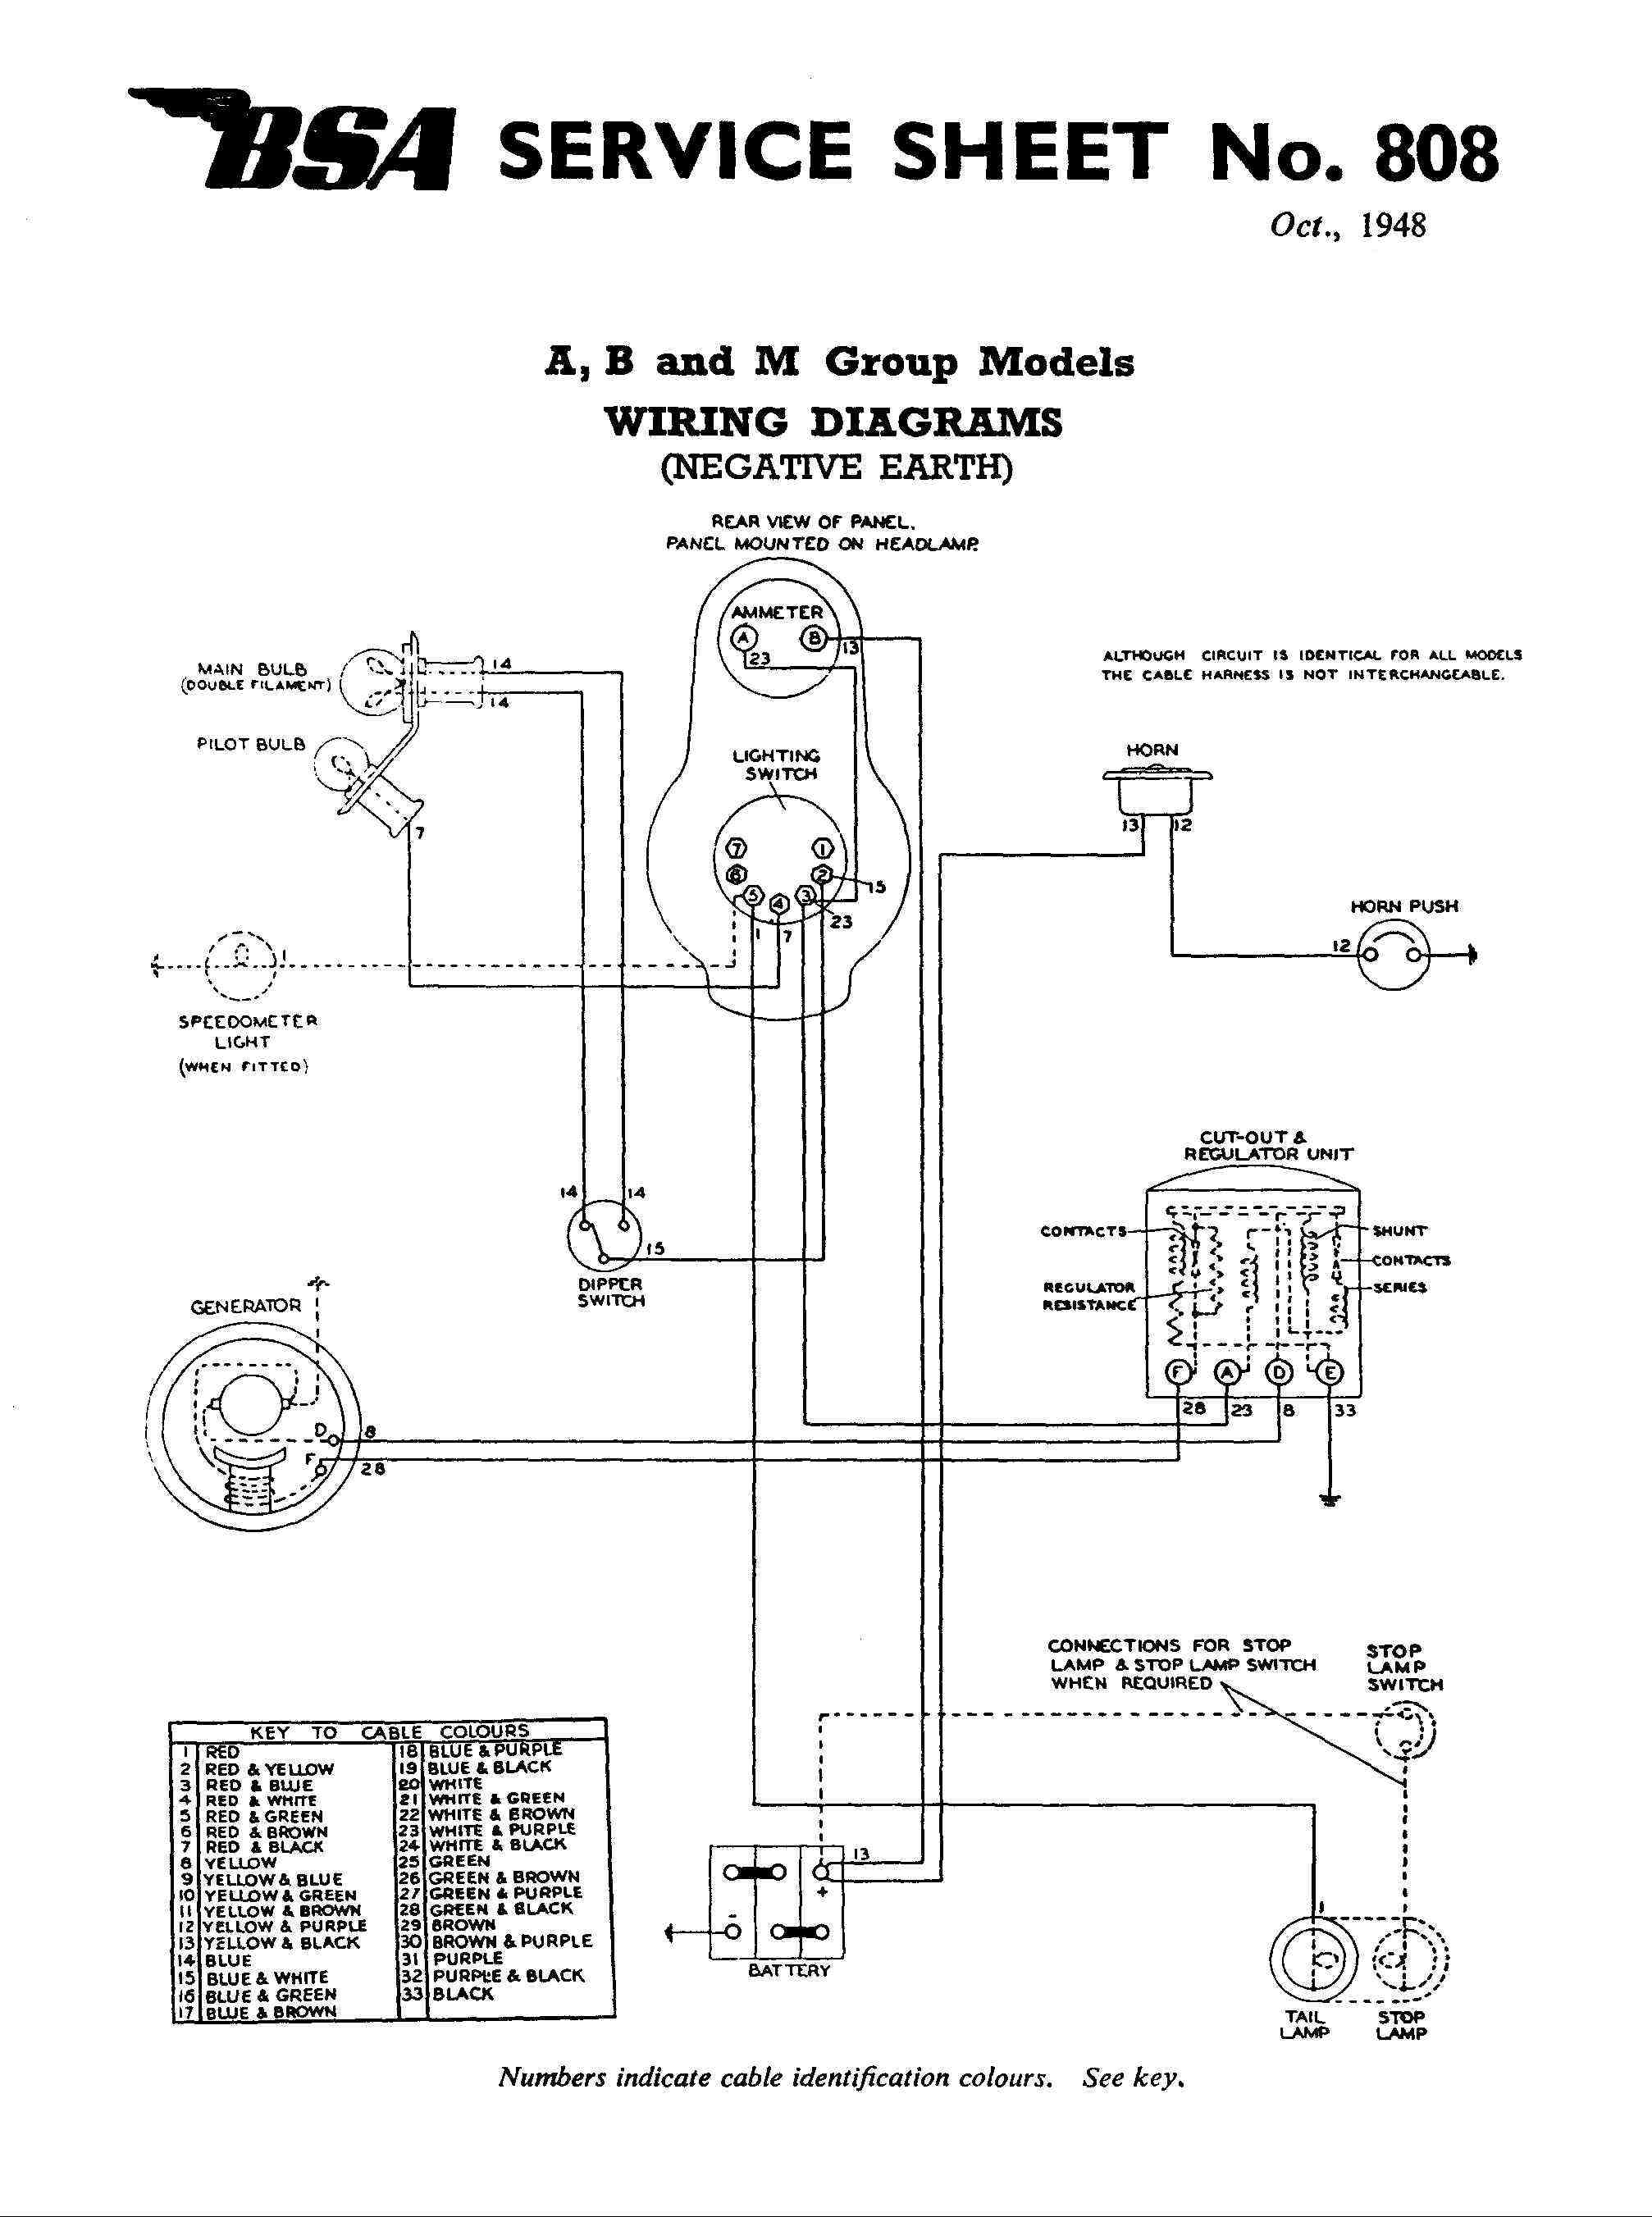 Positive Ground Wiring Diagram For Meter Free Download Image 12v Bsa A10 Third Level